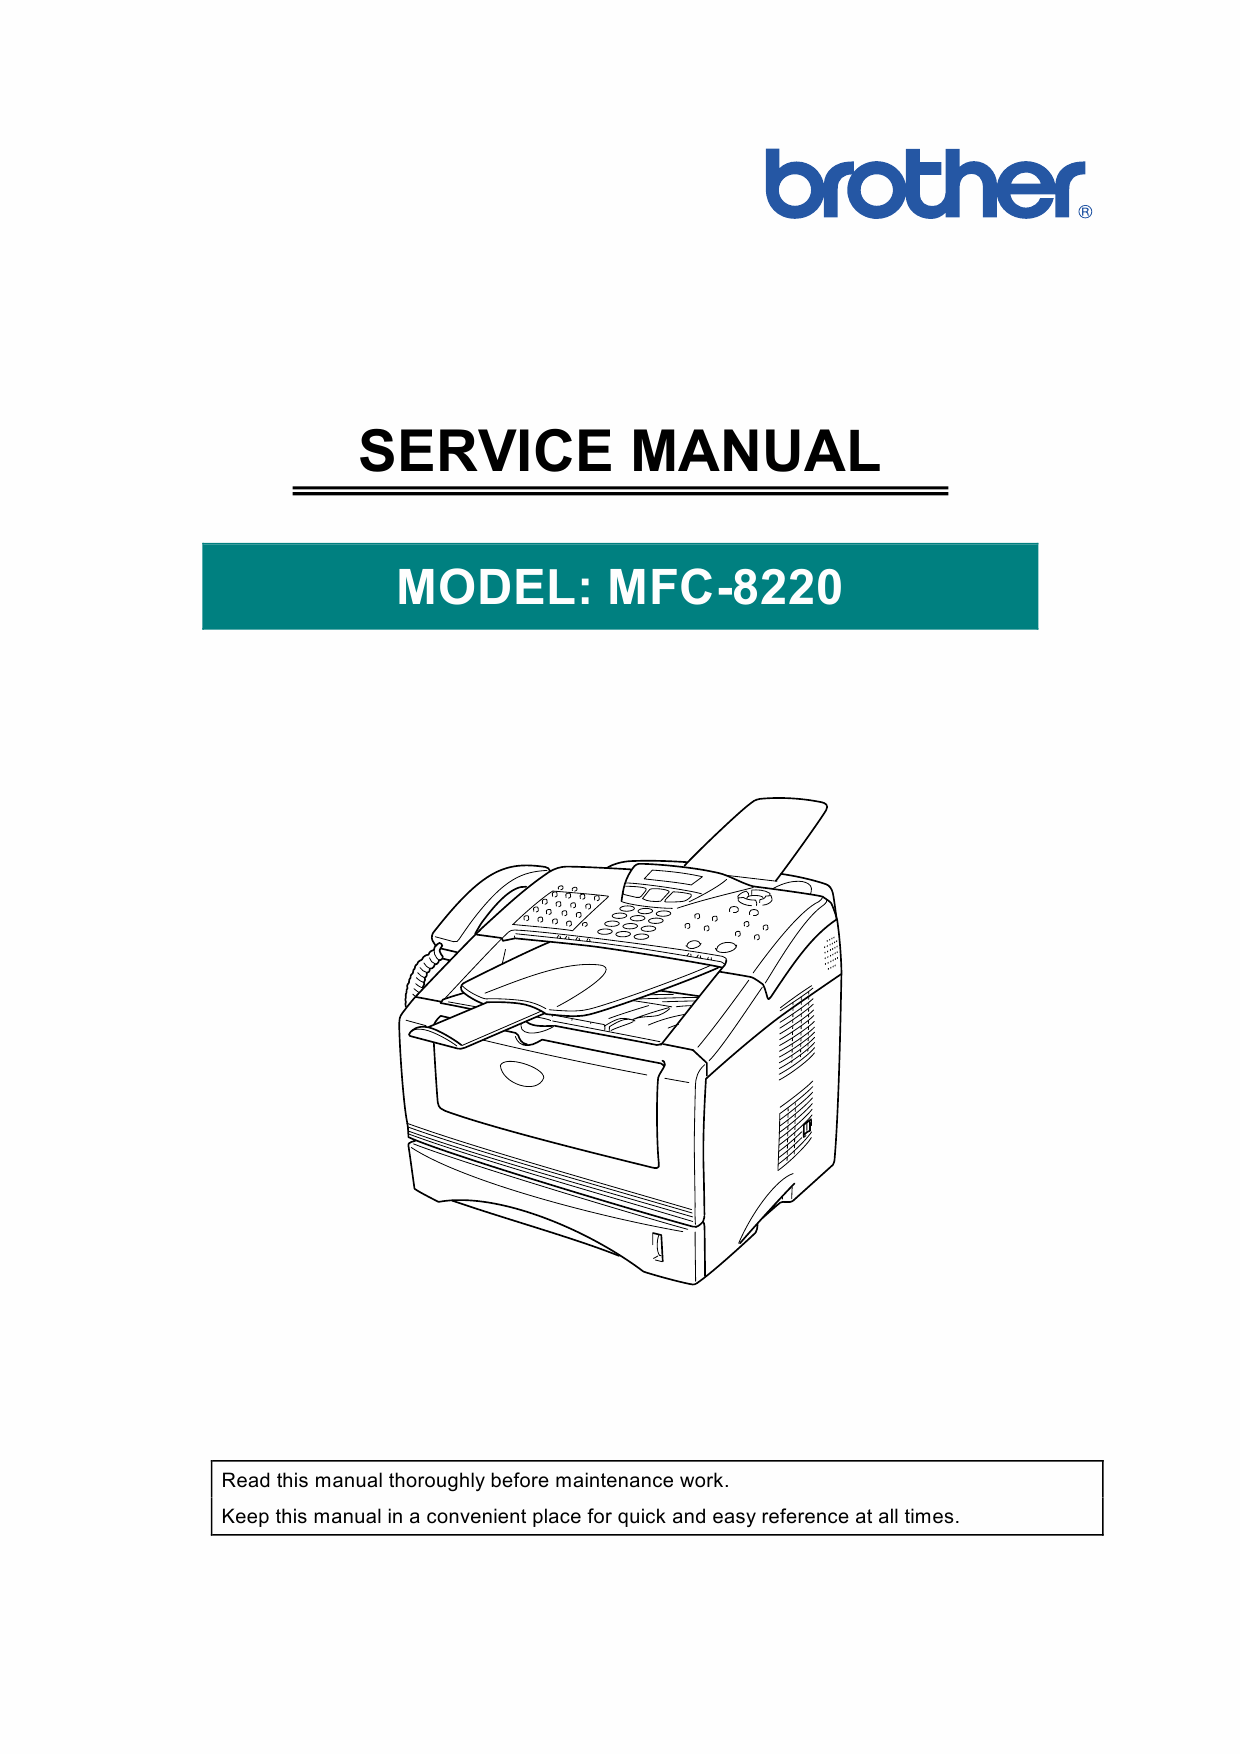 brother mfc 240c service manual